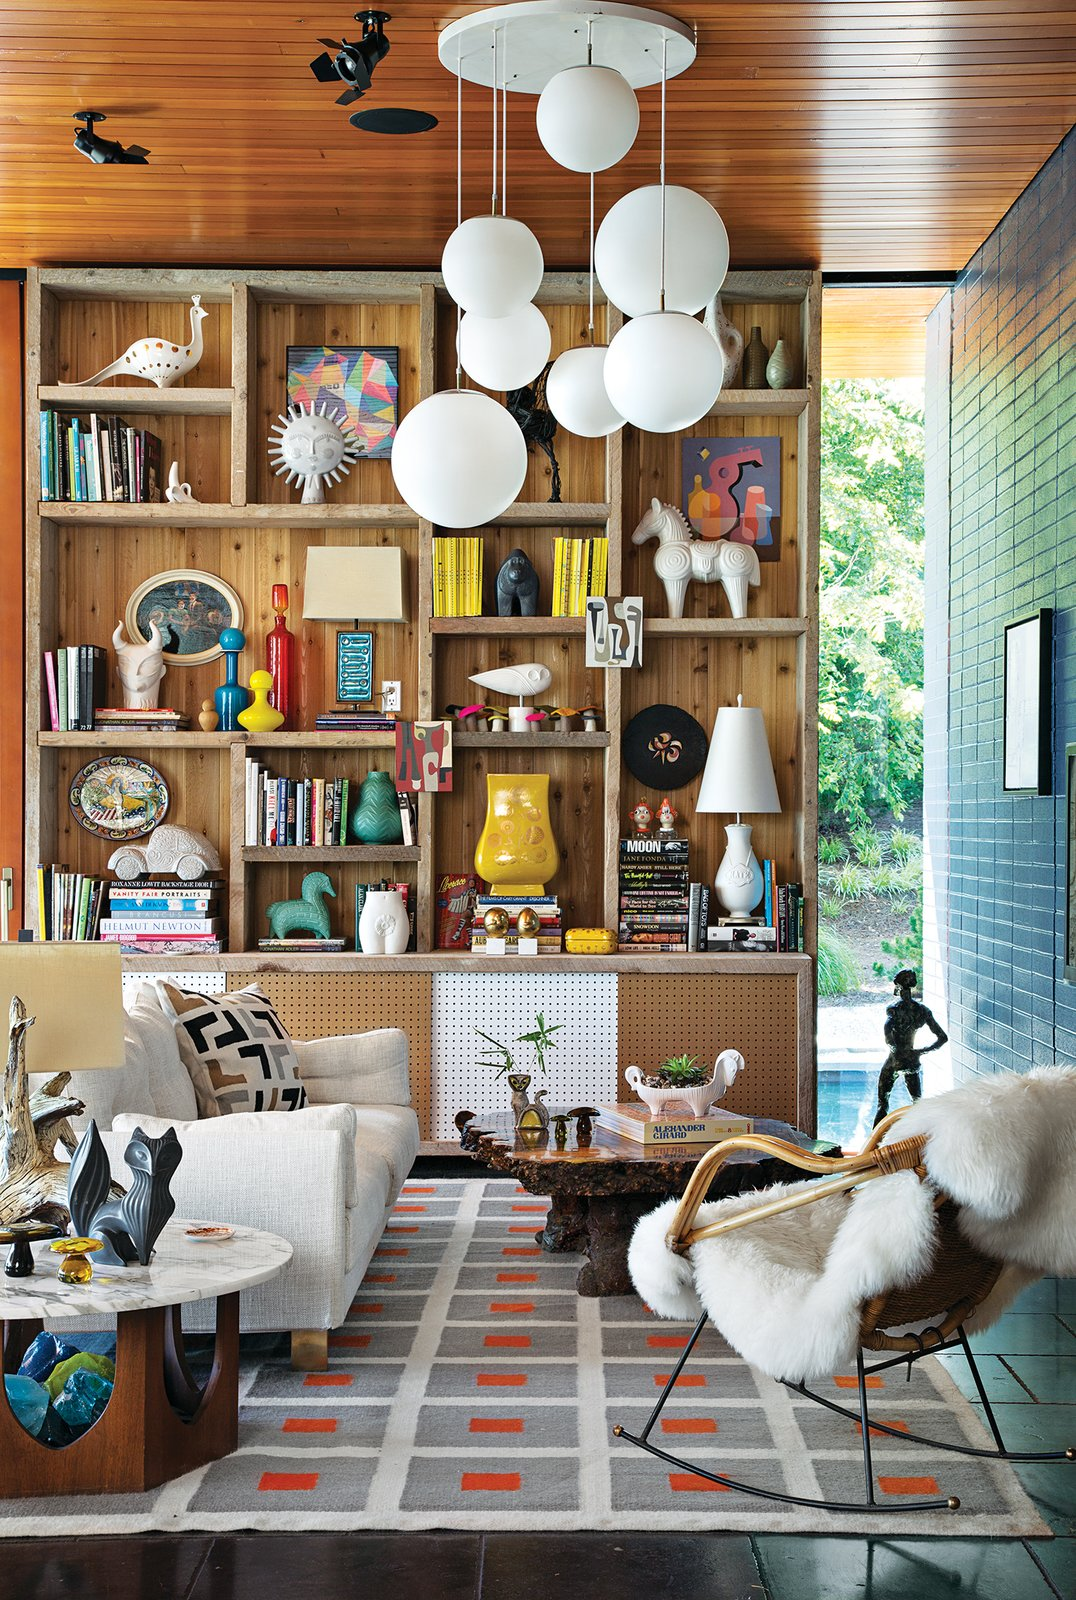 The site-sensitive exterior belies an interior festooned with a kaleidoscopic mix of colors and an array of tactile materials. The Peter rug, Malibu sofa, and ceramics are Adler's own designs. The tables, pendant lights, and rocker are vintage. Adler and Doonan used scaffolding from the house's construction to build the bookshelf.  127+ Inspiring Interior Ideas by Dwell from Jonathan Adler and Simon Doonan Go Trippy Contemporary on Shelter Island